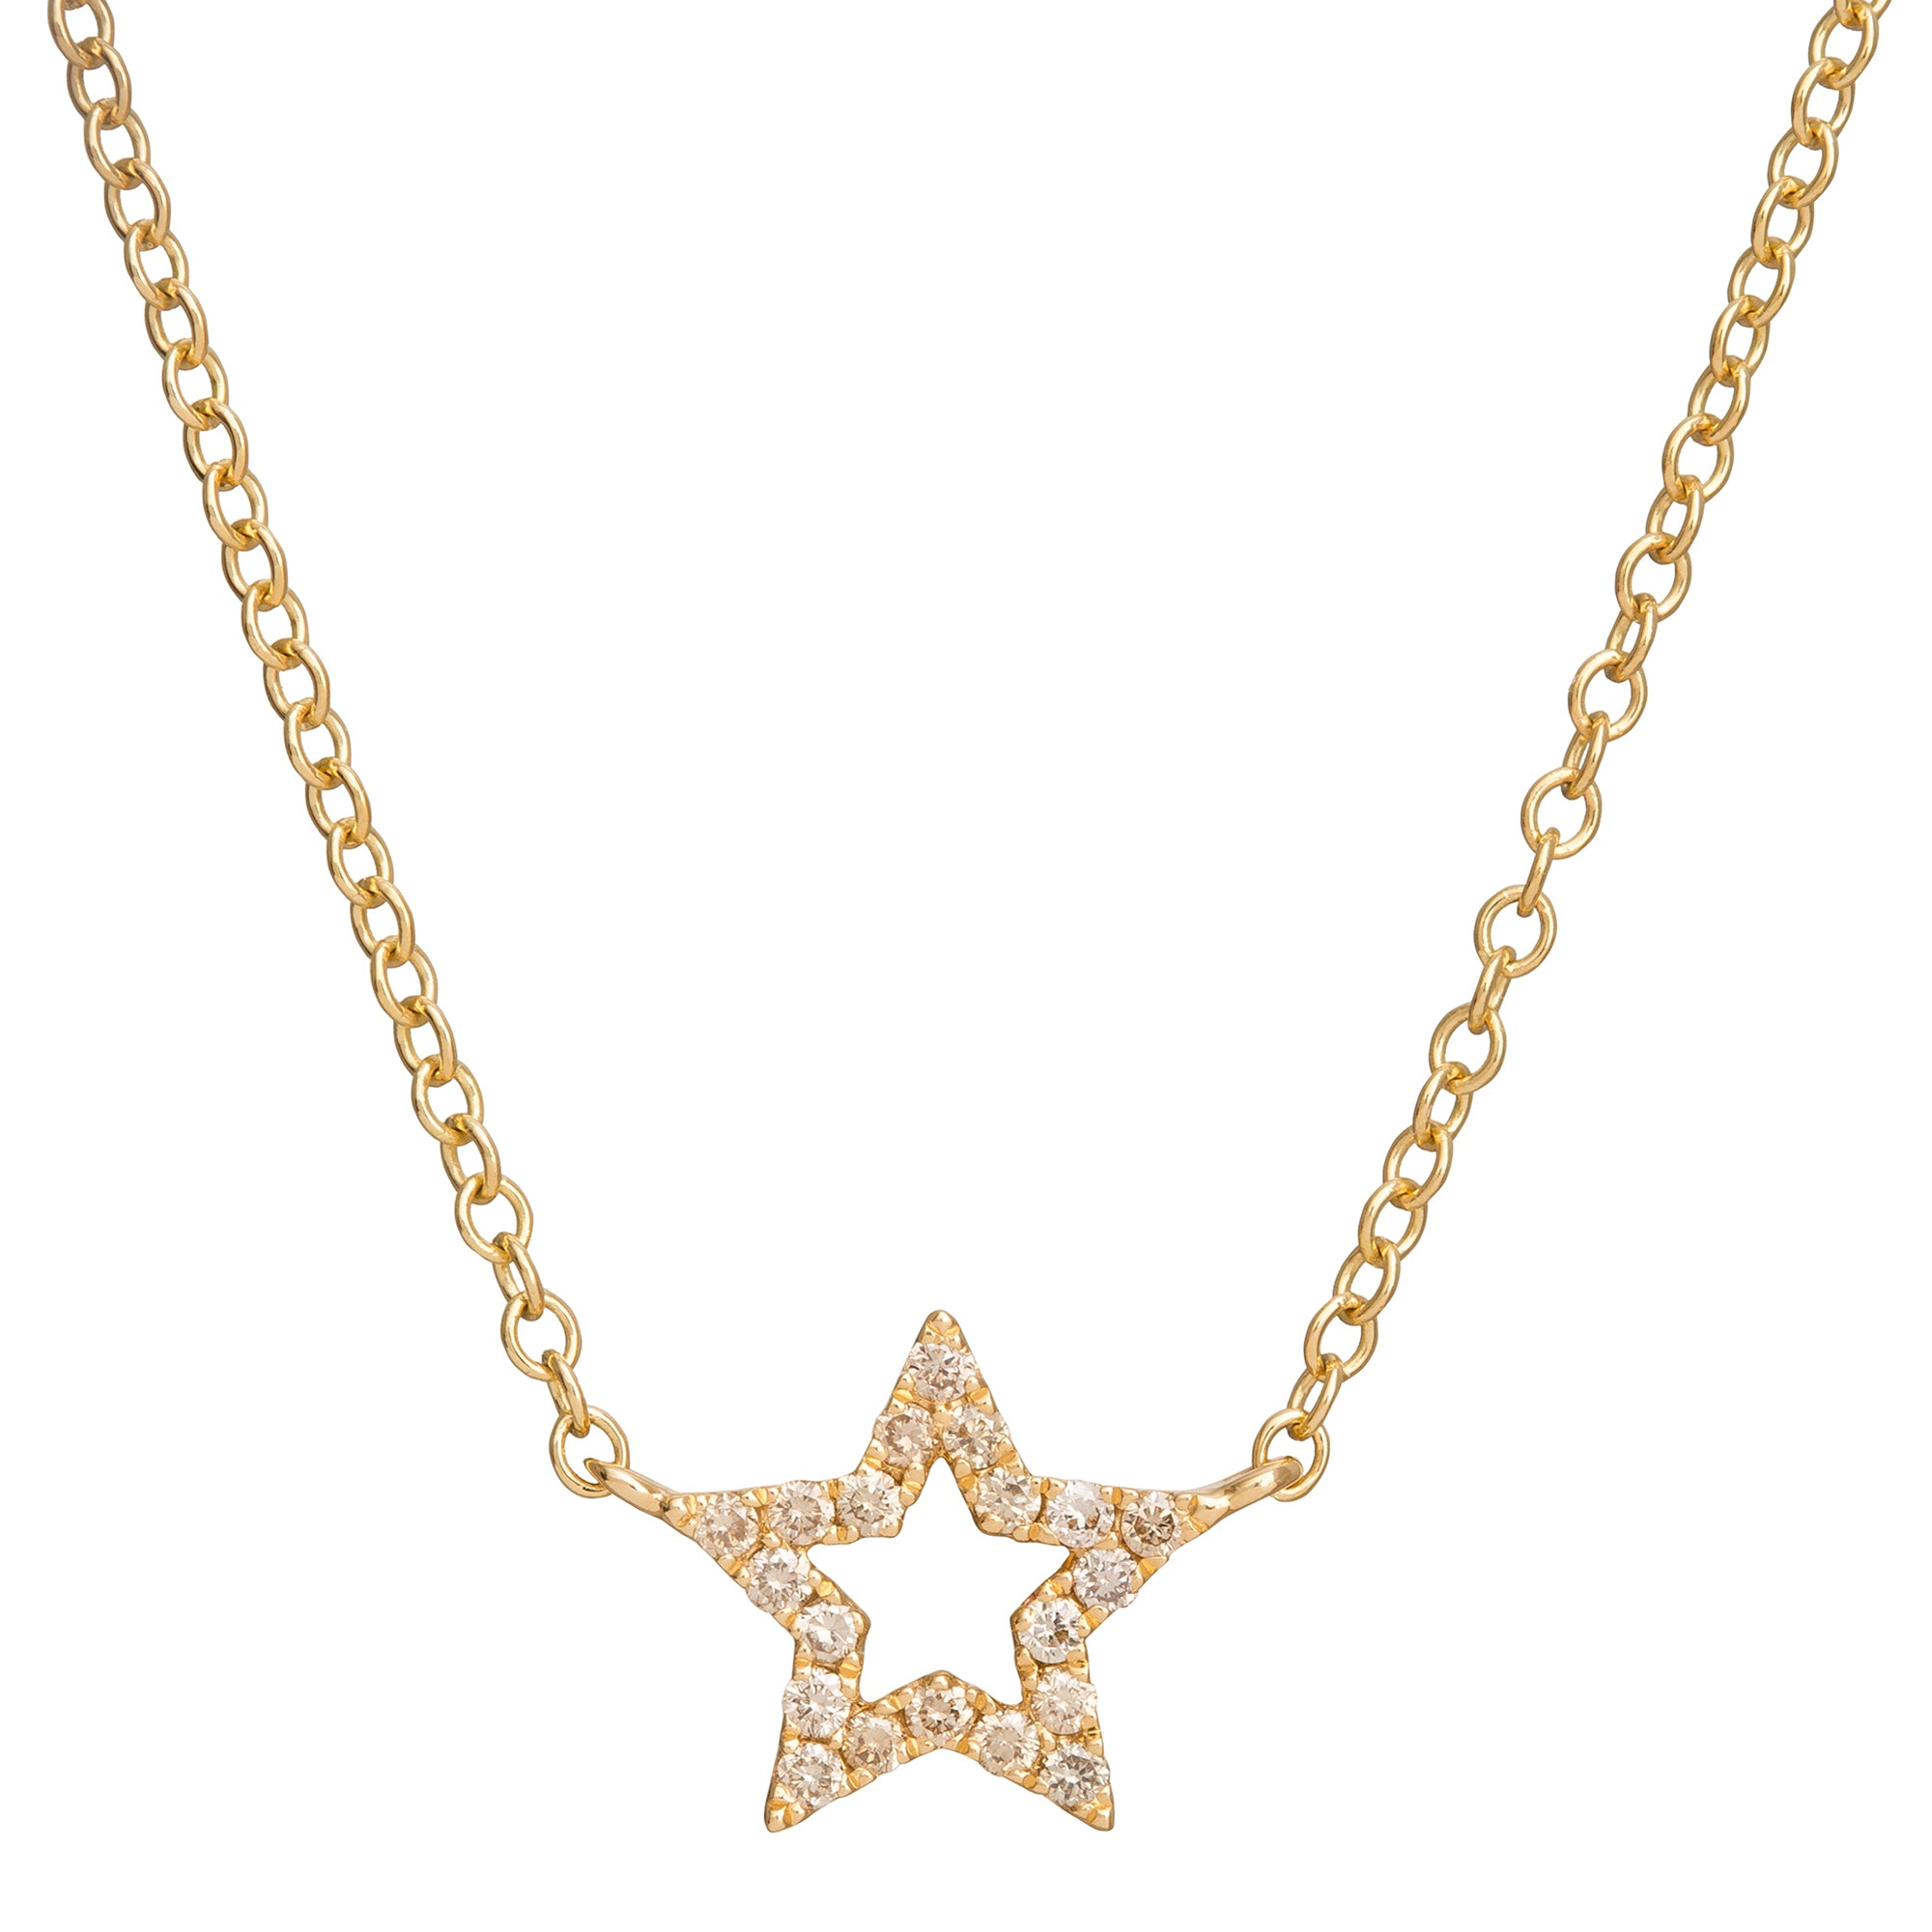 Star Charm Necklace - Rosa de la Cruz - Necklaces | Broken English Jewelry